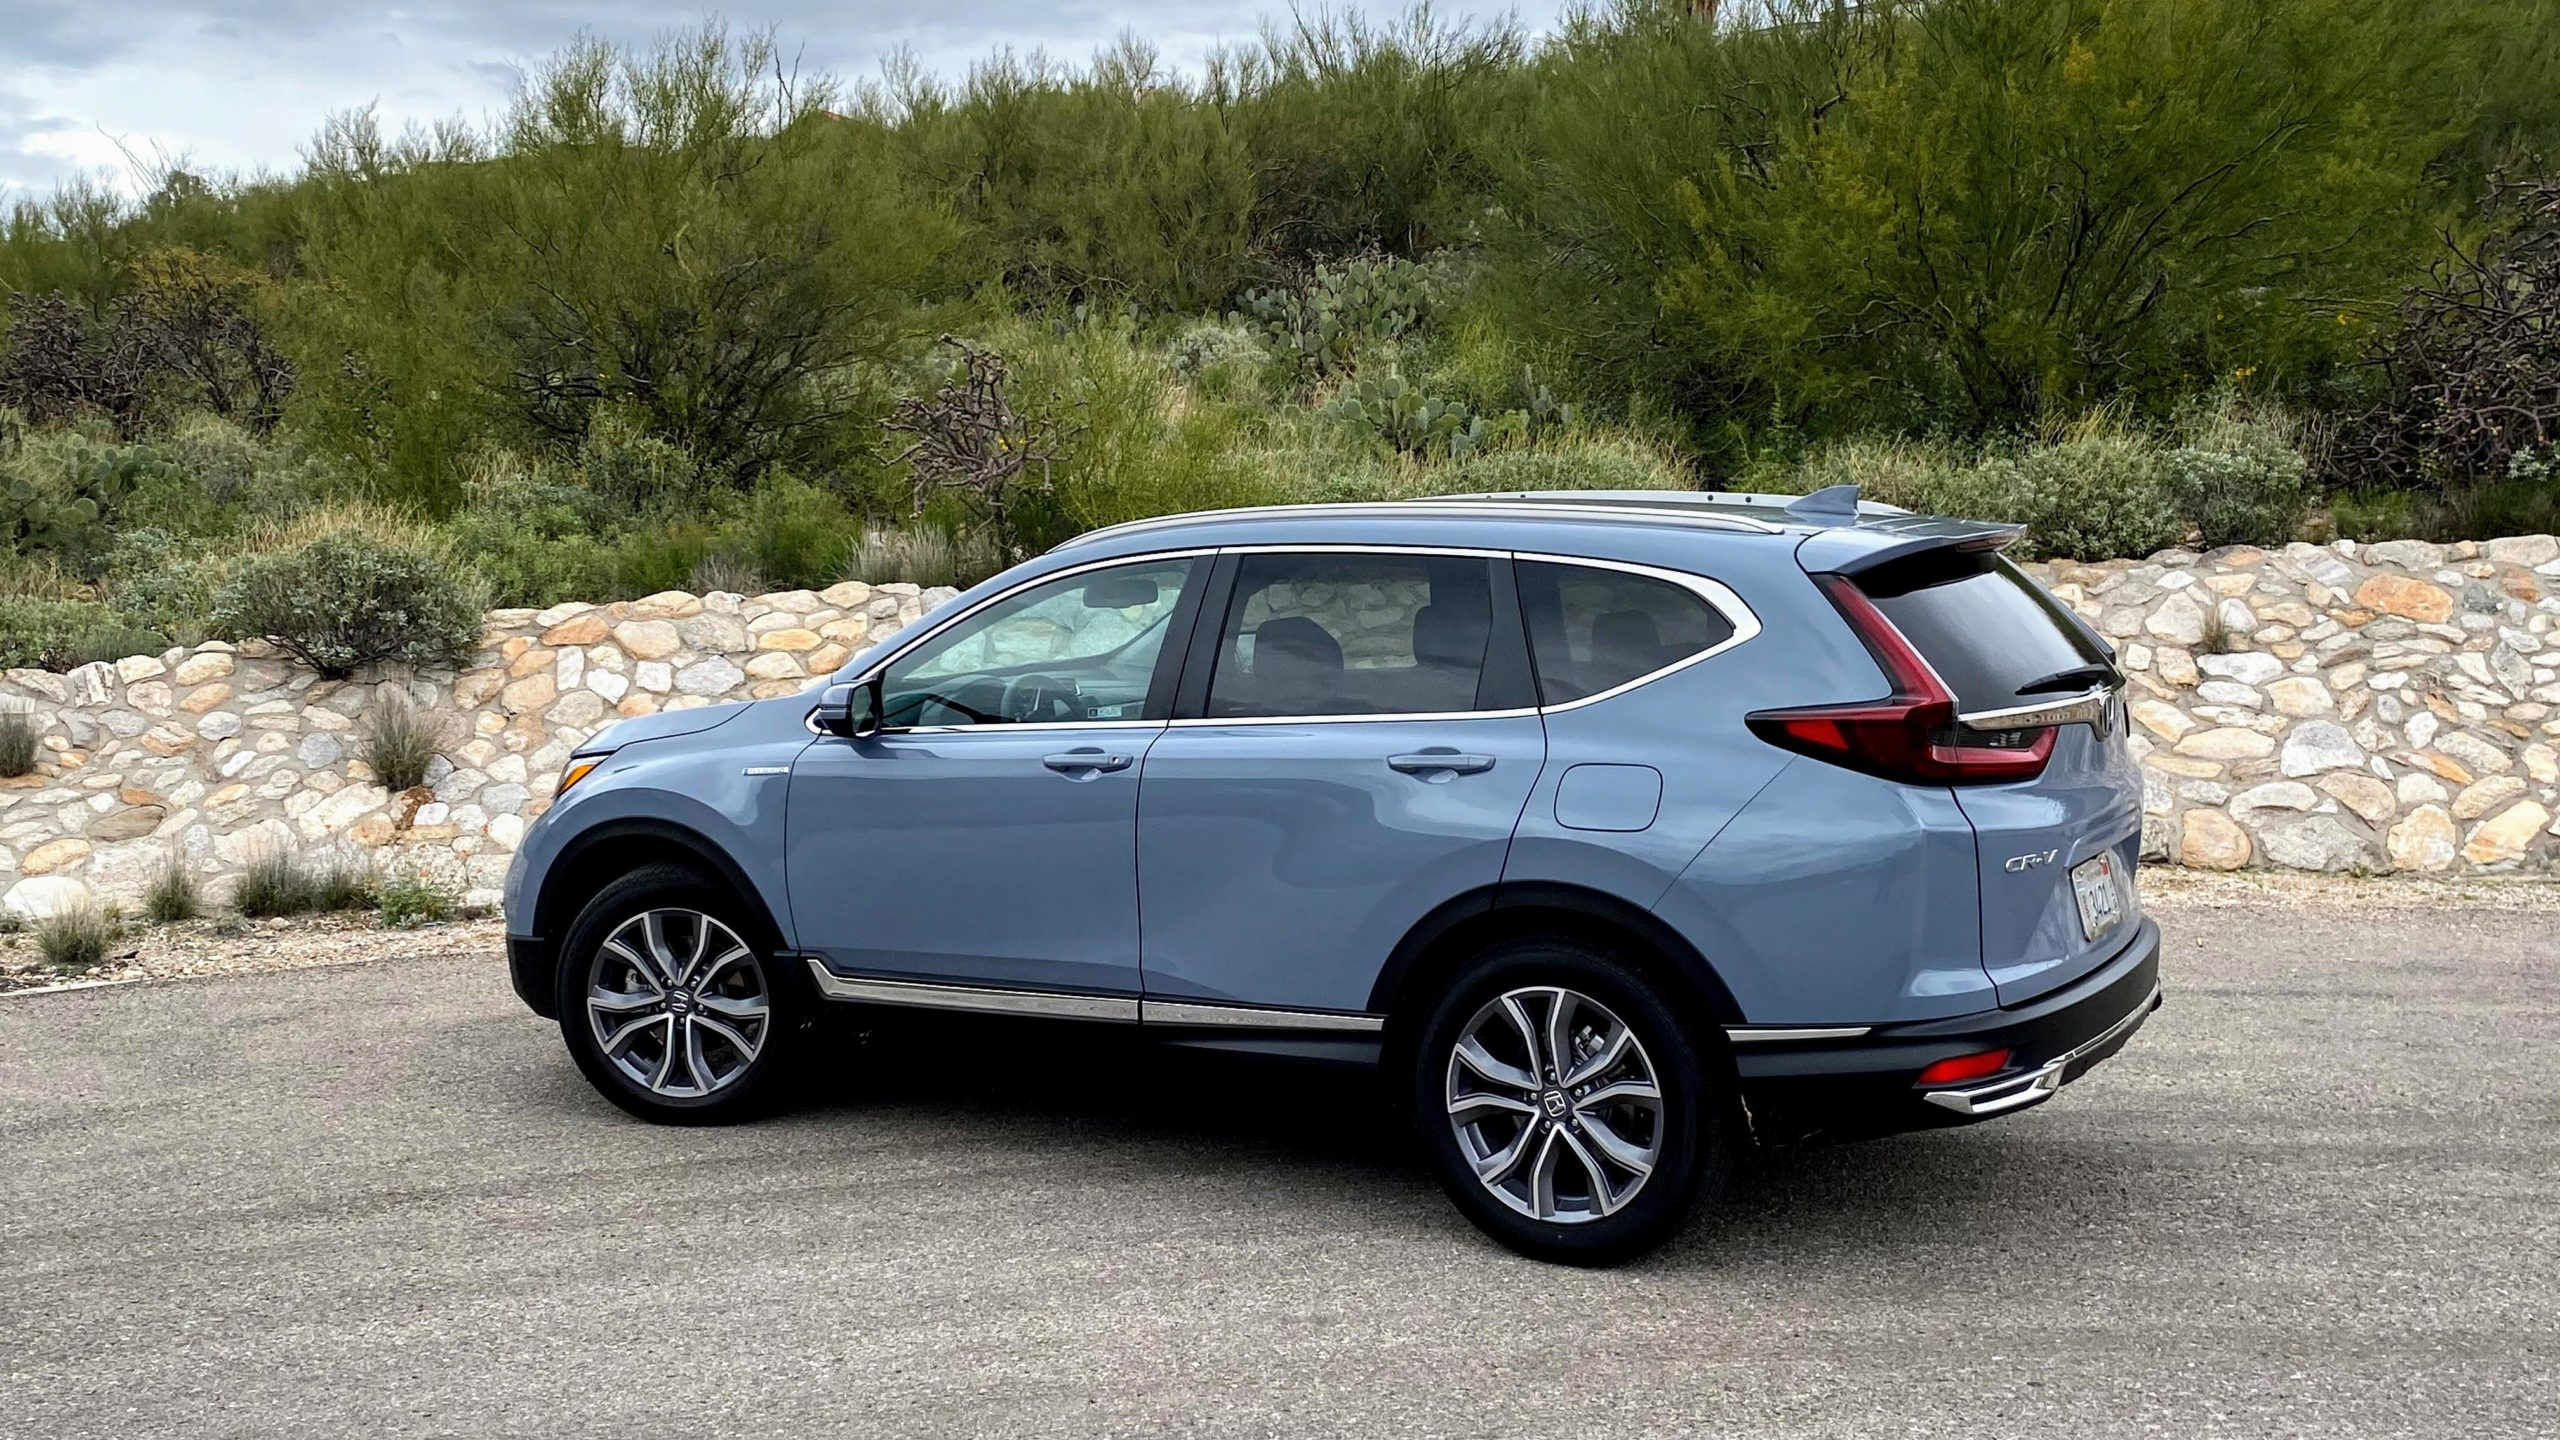 The 2020 Honda CR-V Hybrid adds another strong option to the popular sport utility vehicle.